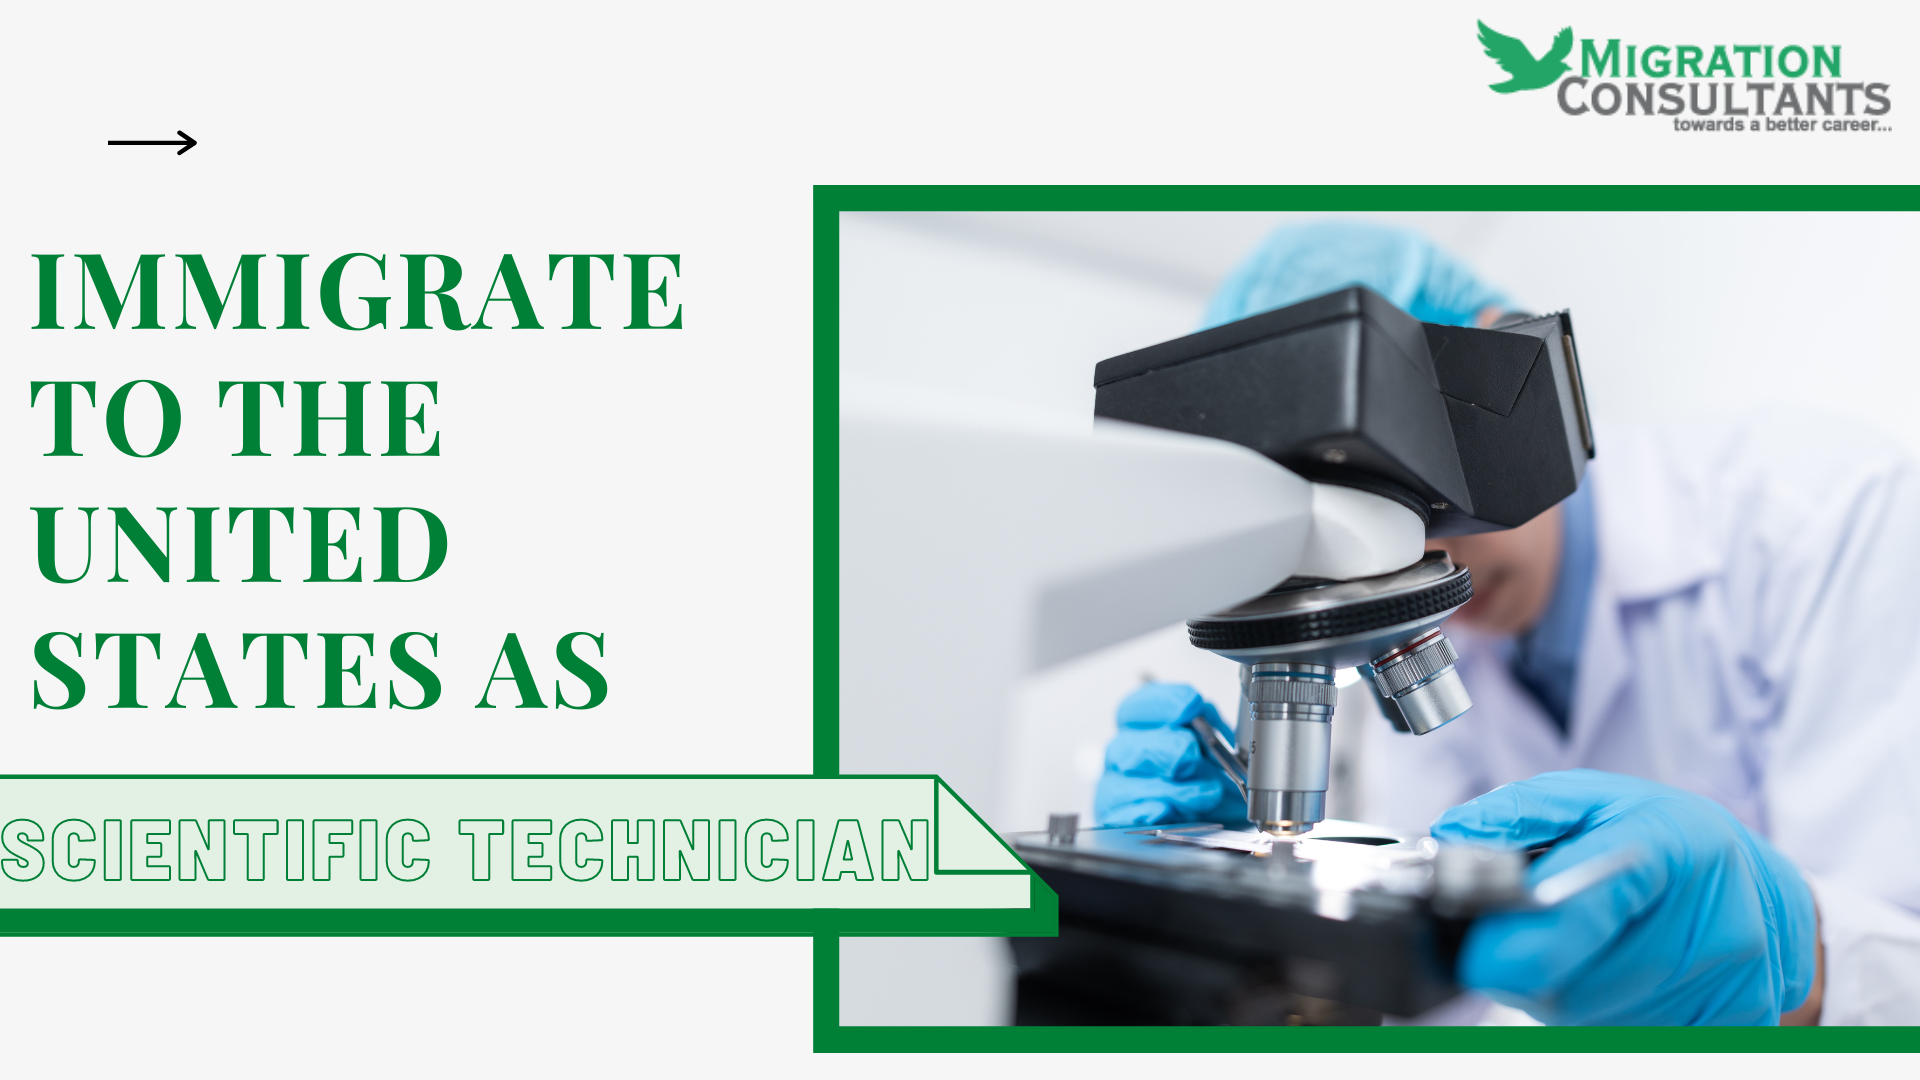 How do you immigrate to the United States as a Scientific Technician?